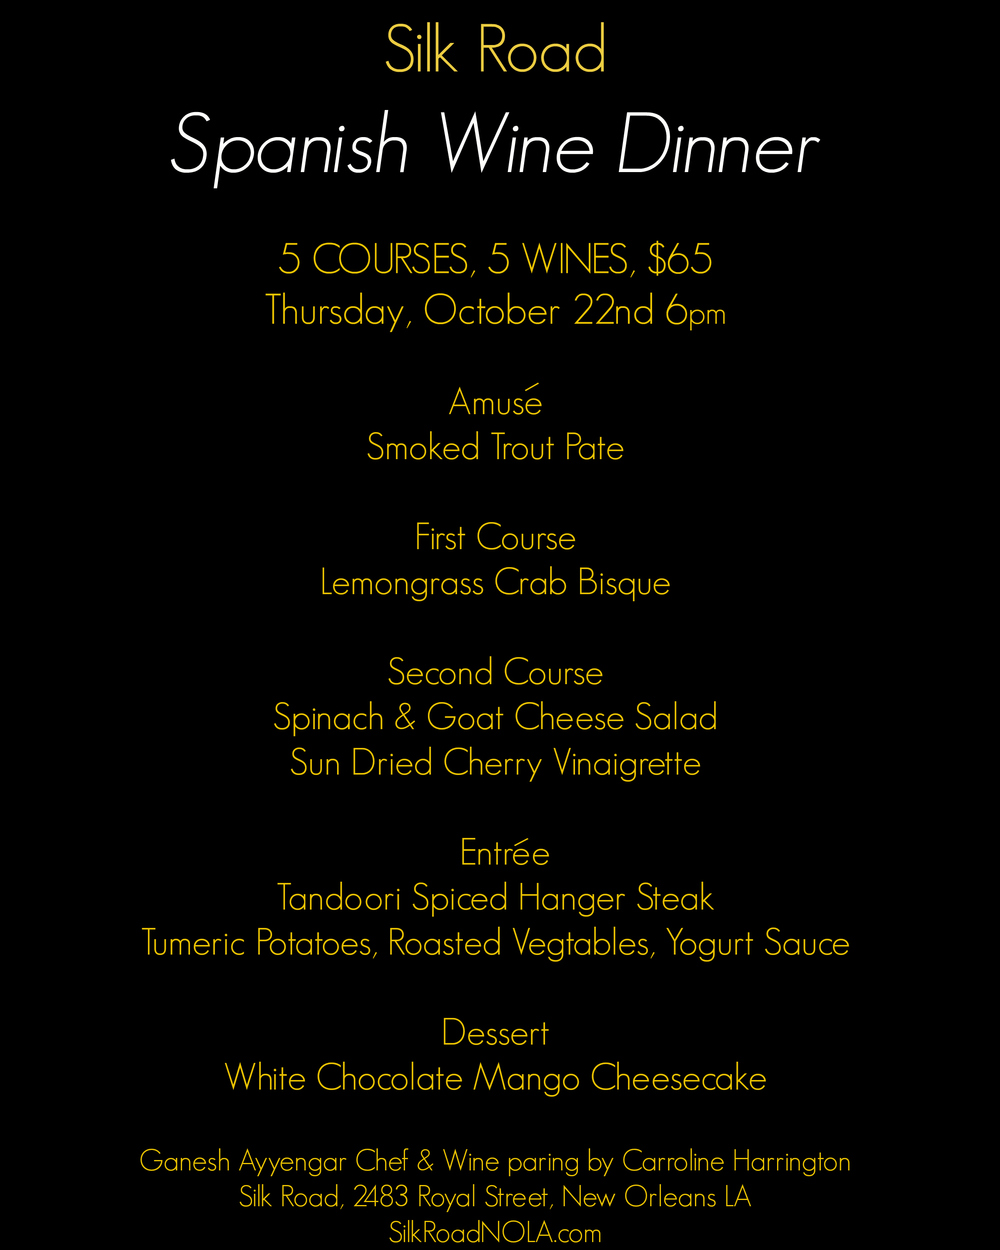 Spanish wine dinner silk road menu 2